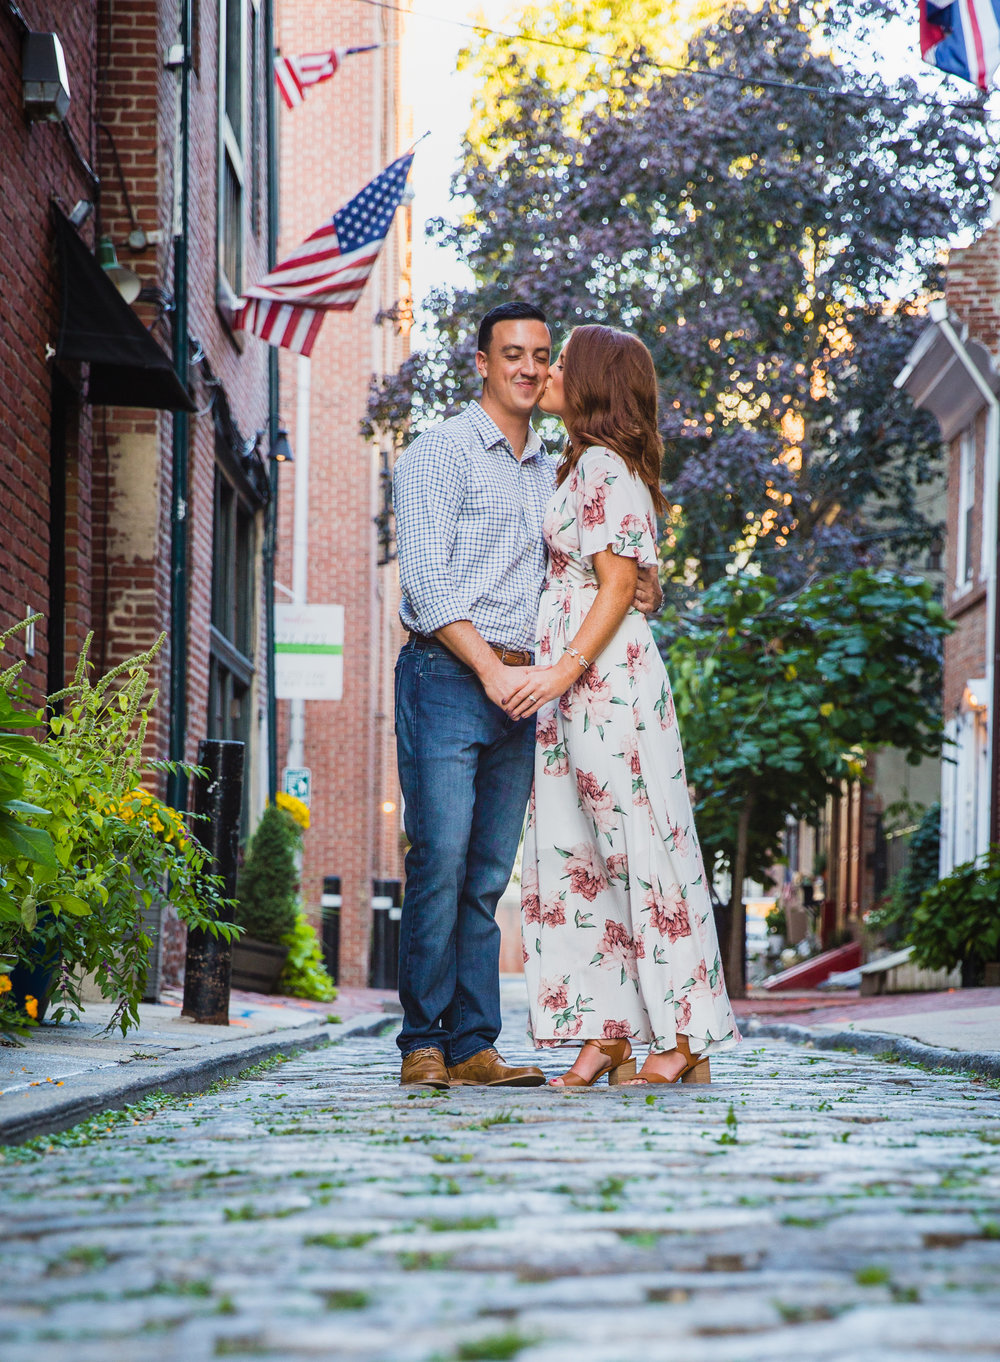 OLD CITY PHILADELPHIA ENGAGEMENT PHOTOS LOVESTRUCK PICTURES - 027.jpg